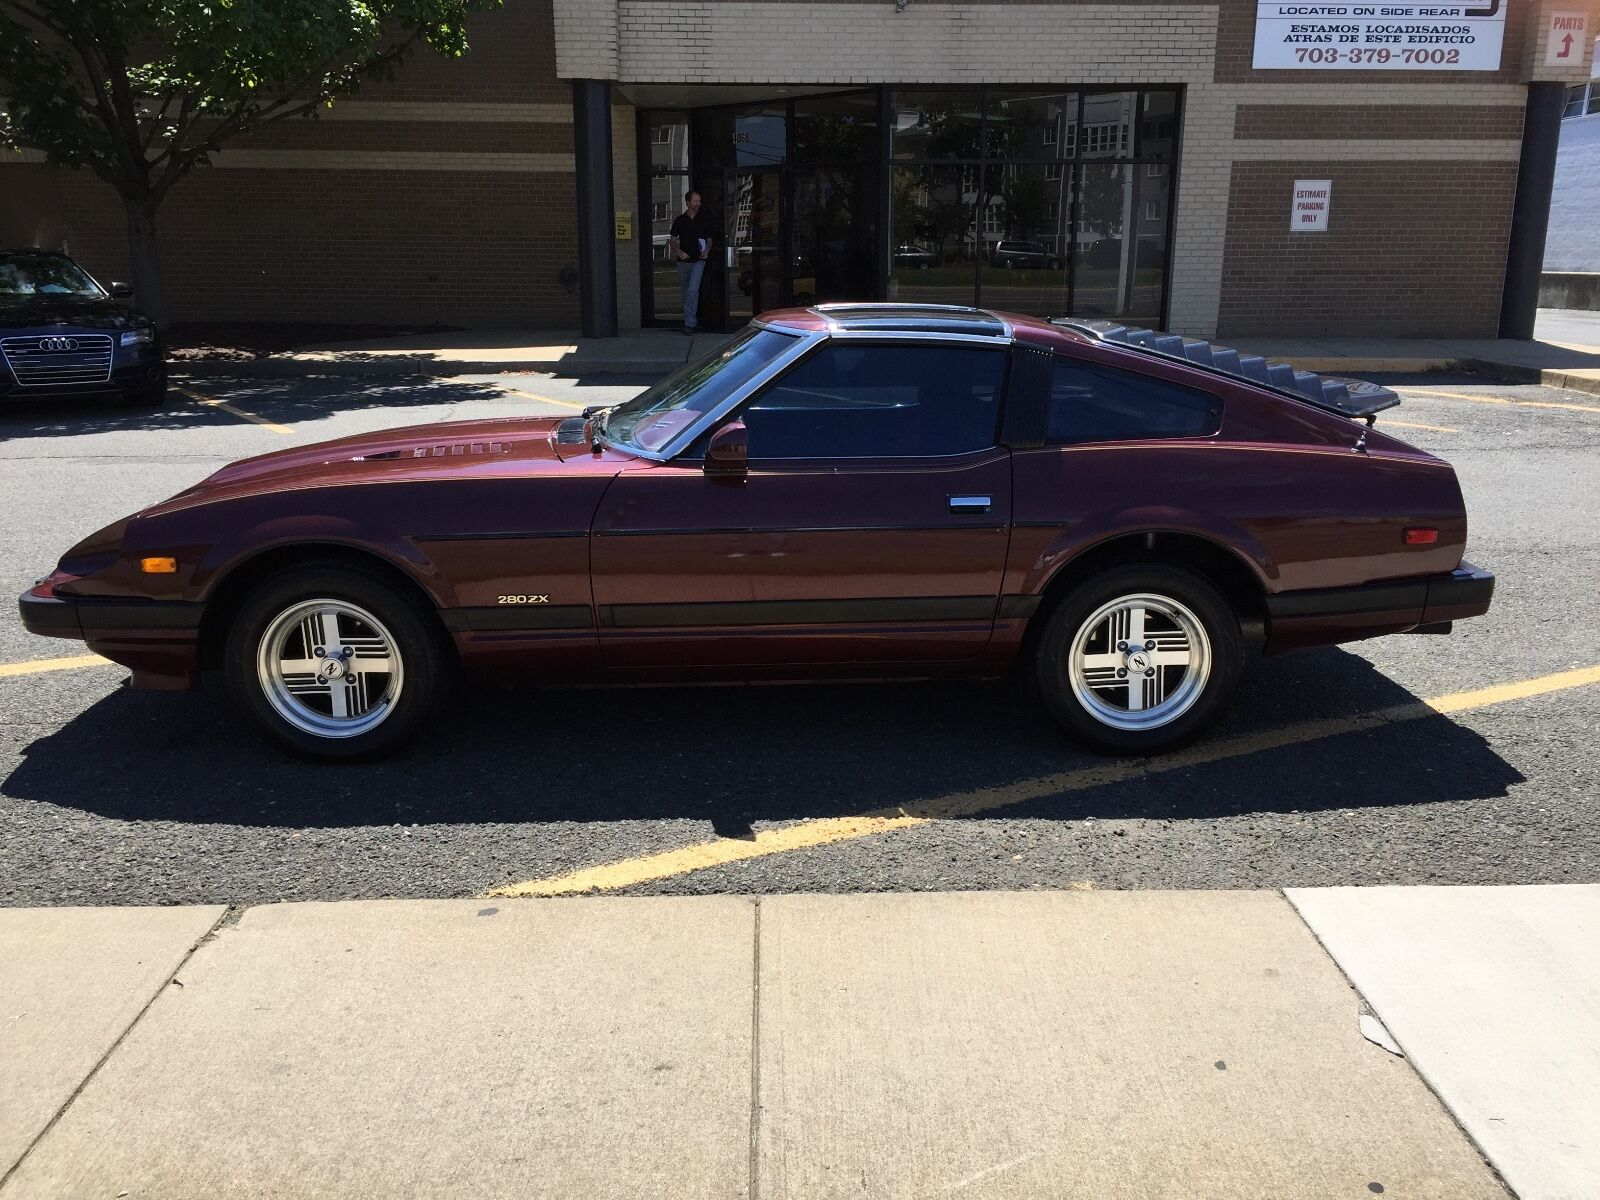 1982 Nissan 280ZX Coupe NISSAN 280ZX COUPE 1982 EXCELLENT CONDITION TWO-OWNER